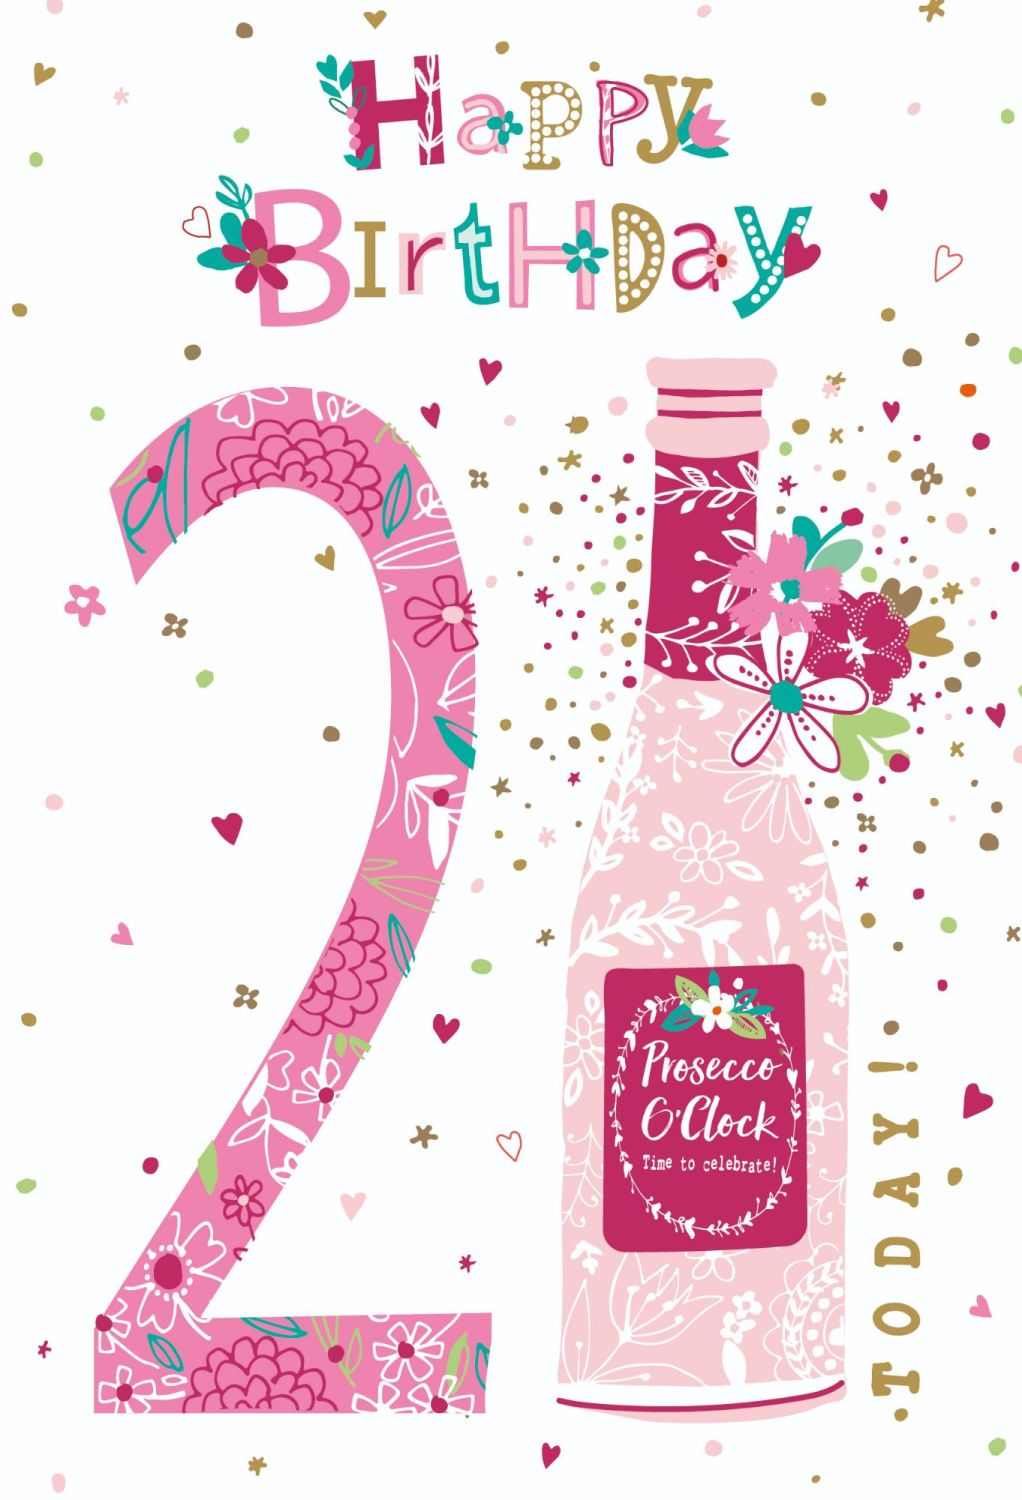 21st Birthday Cards For Her - HAPPY Birthday TODAY - PROSECCO Birthday CARD